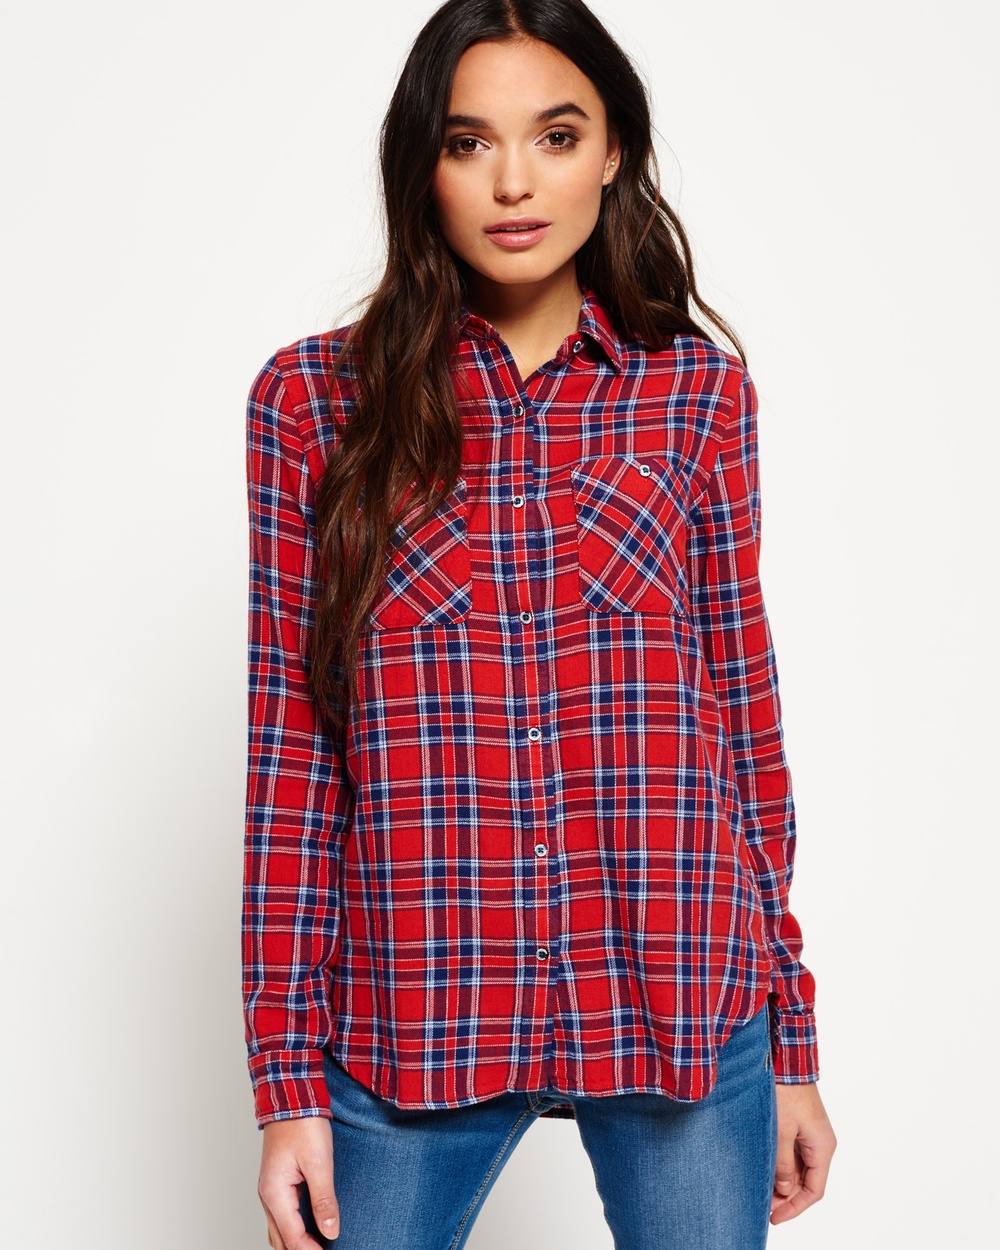 Superdry Utility Check Boyfriend Shirt Tops Fairfield Check Utility Check Boyfriend Shirt